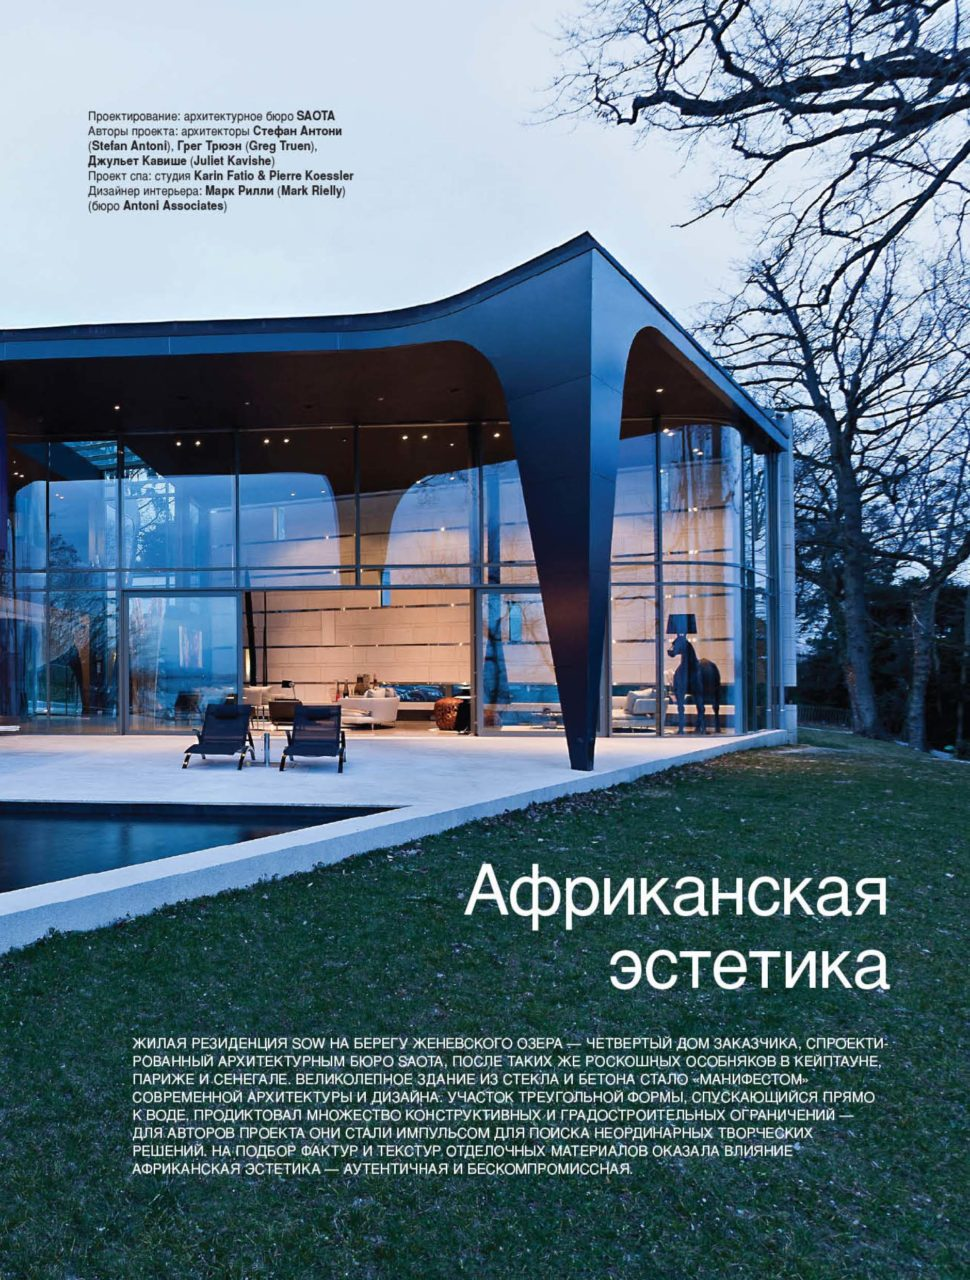 https://www.saota.com/wp-content/uploads/2018/01/2013_March_BeautifulHouses_SAOTA_Lake-House-1-editorial_cover.jpg